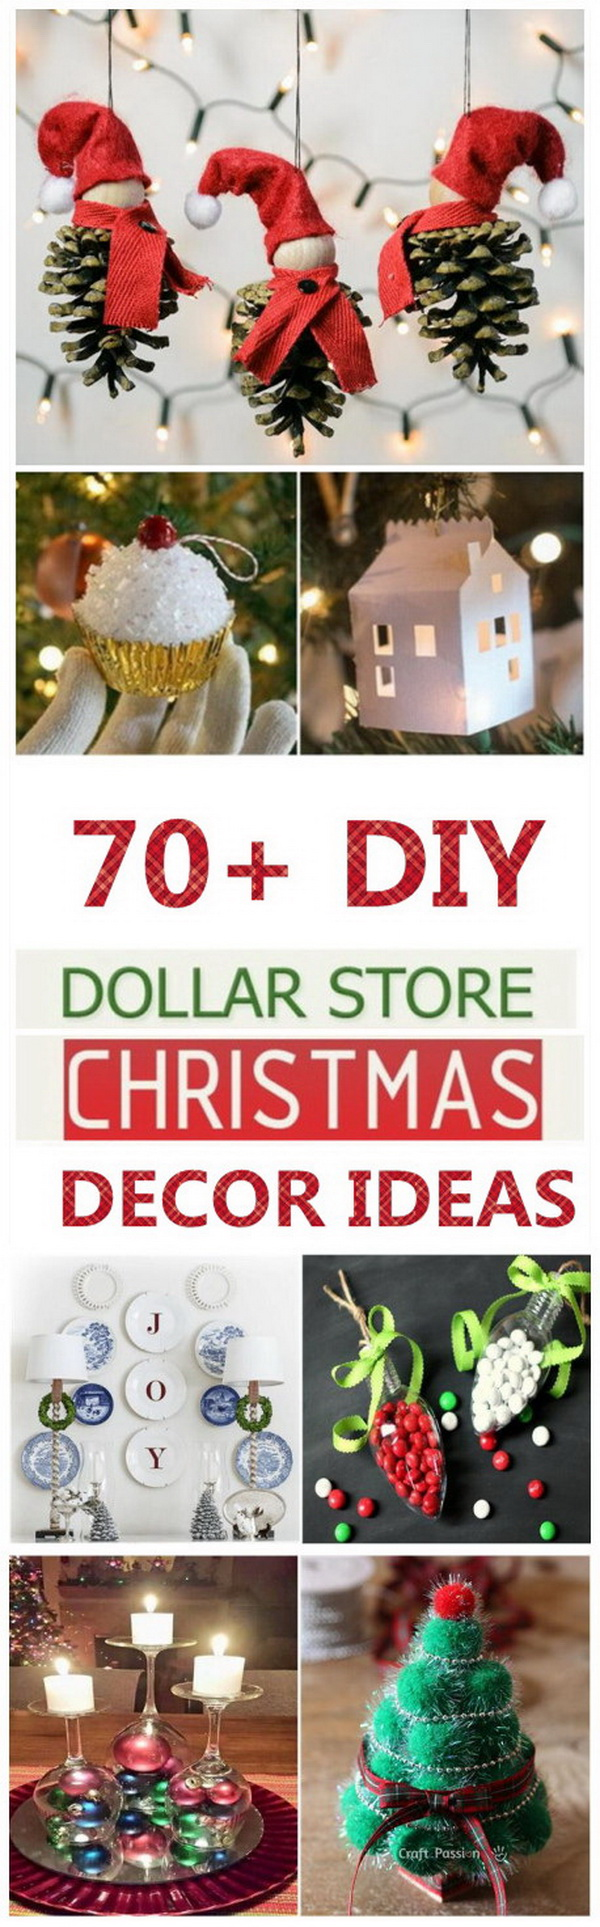 70 diy dollar store christmas decor ideas christmas is one of the most cheerful - 99 Cent Store Christmas Decorations